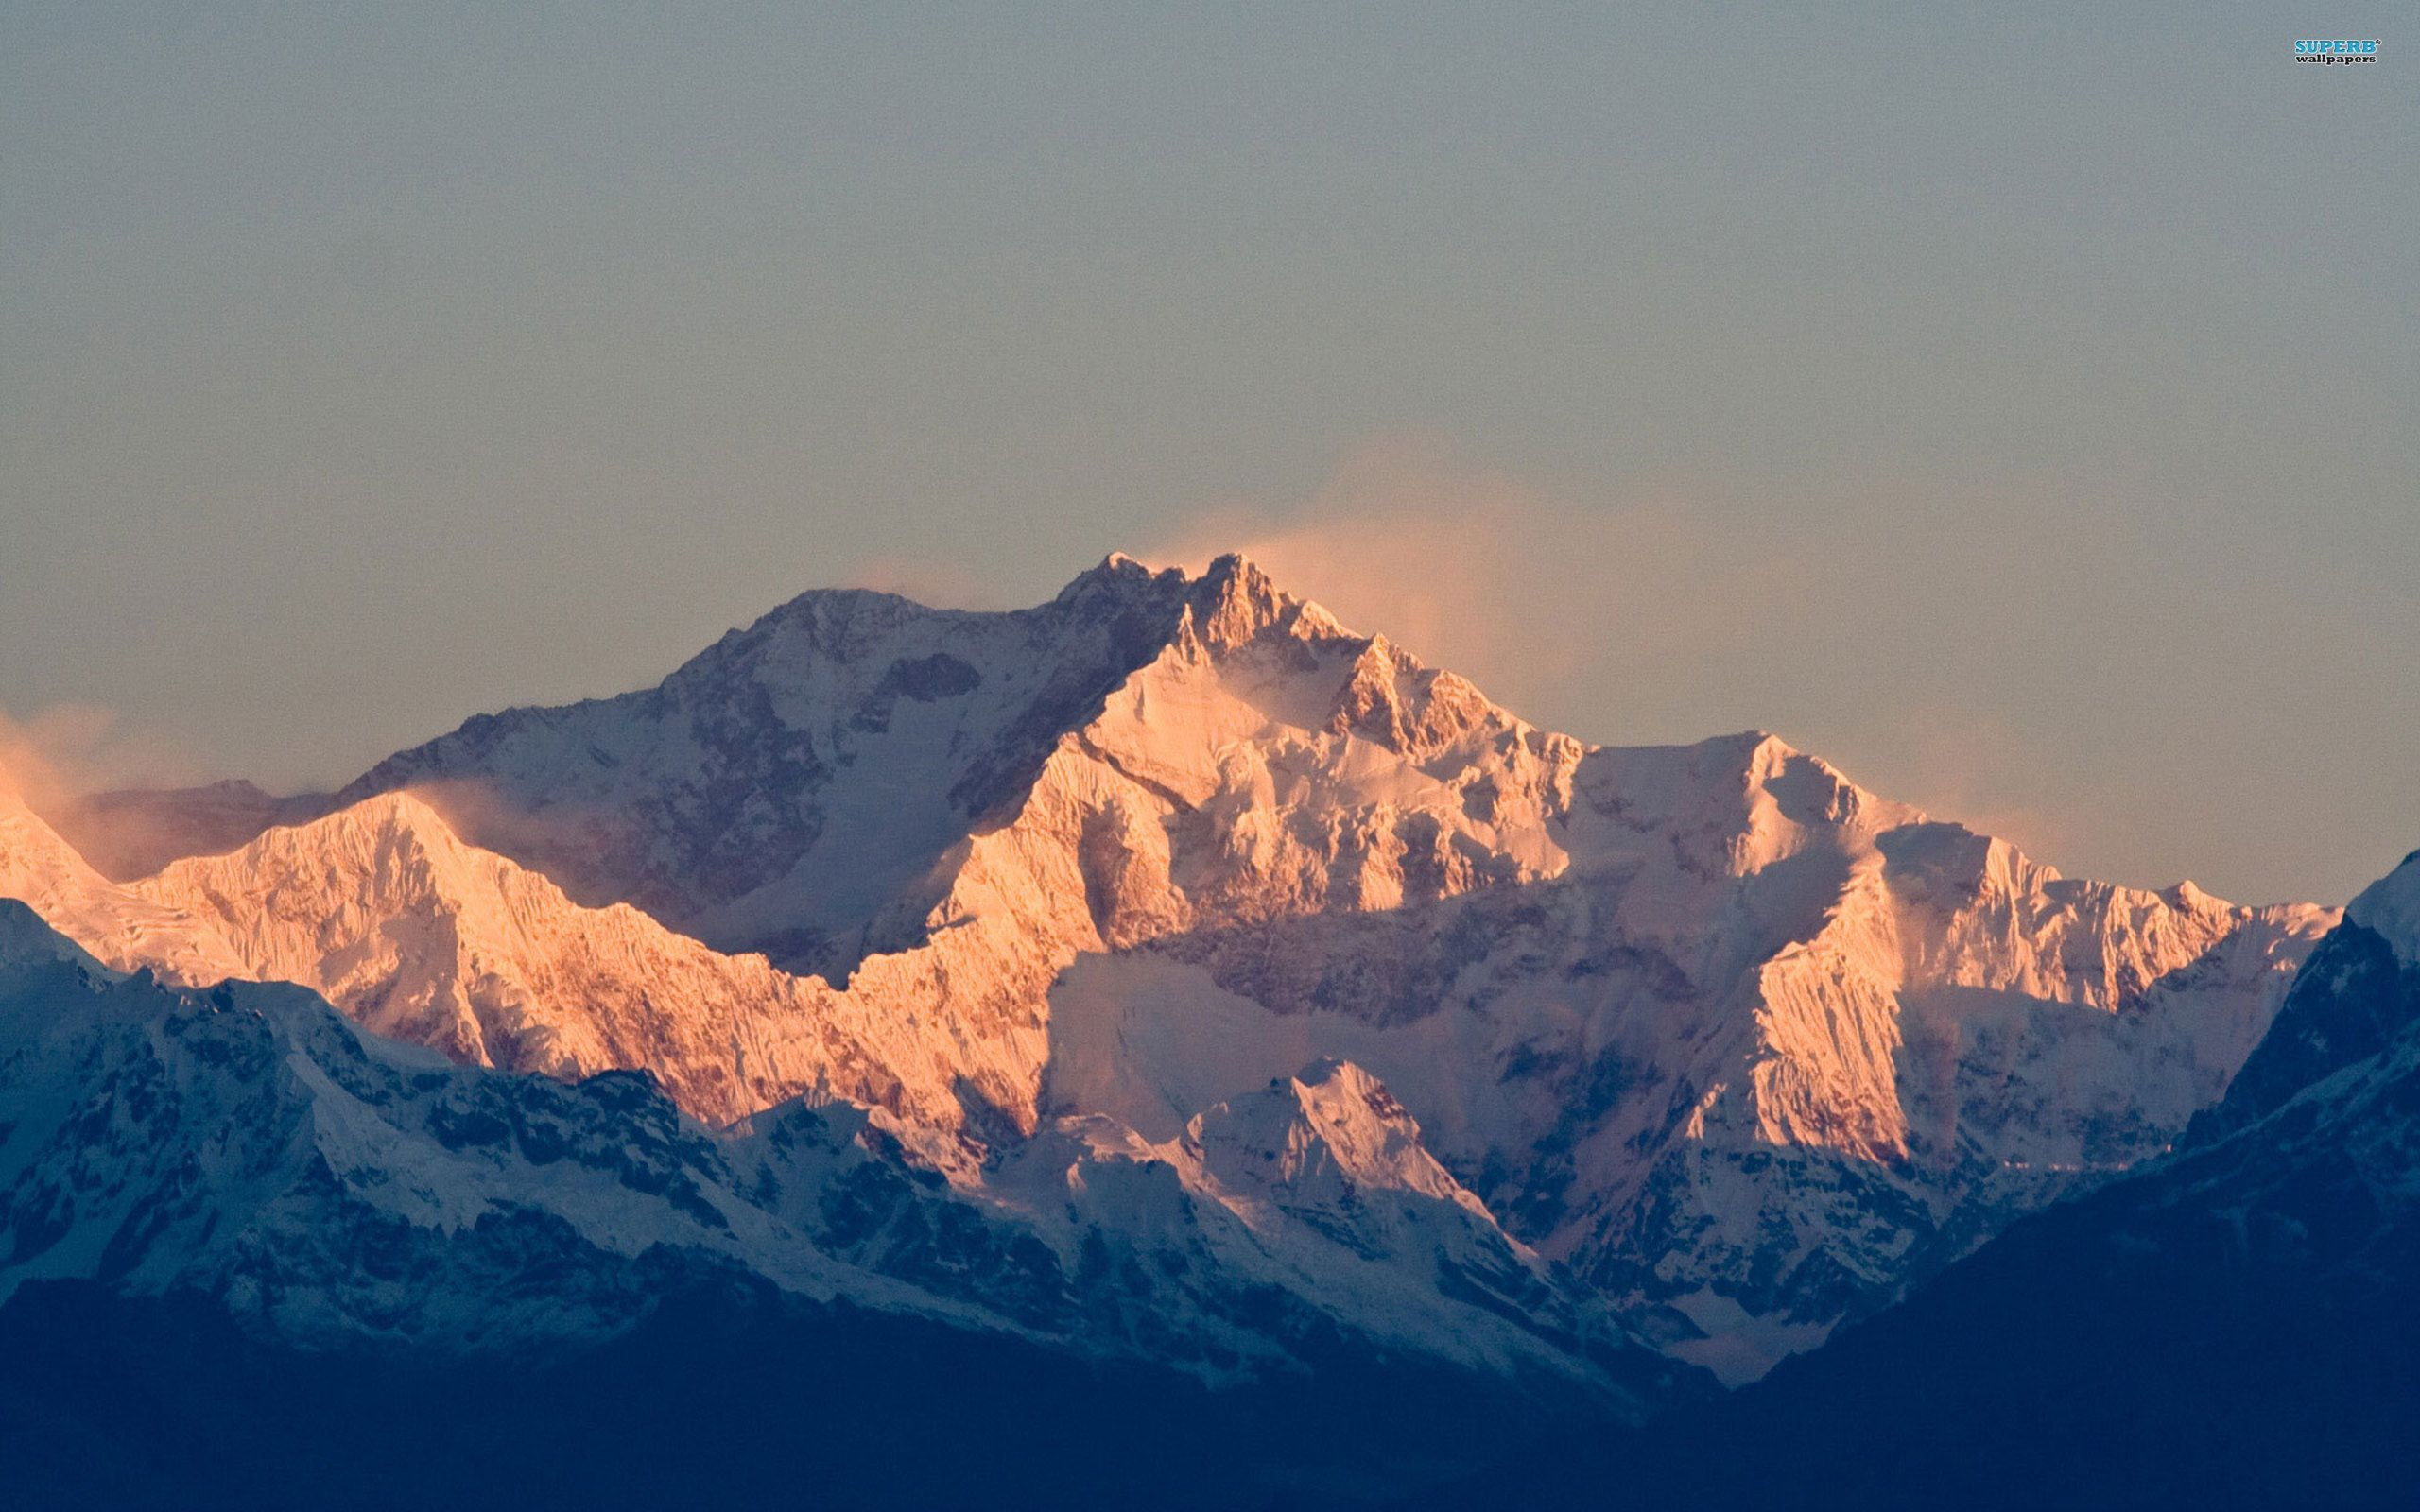 Mountains In Nepal, Kanchenjunga (8,586 m), The third highest mountain in the world